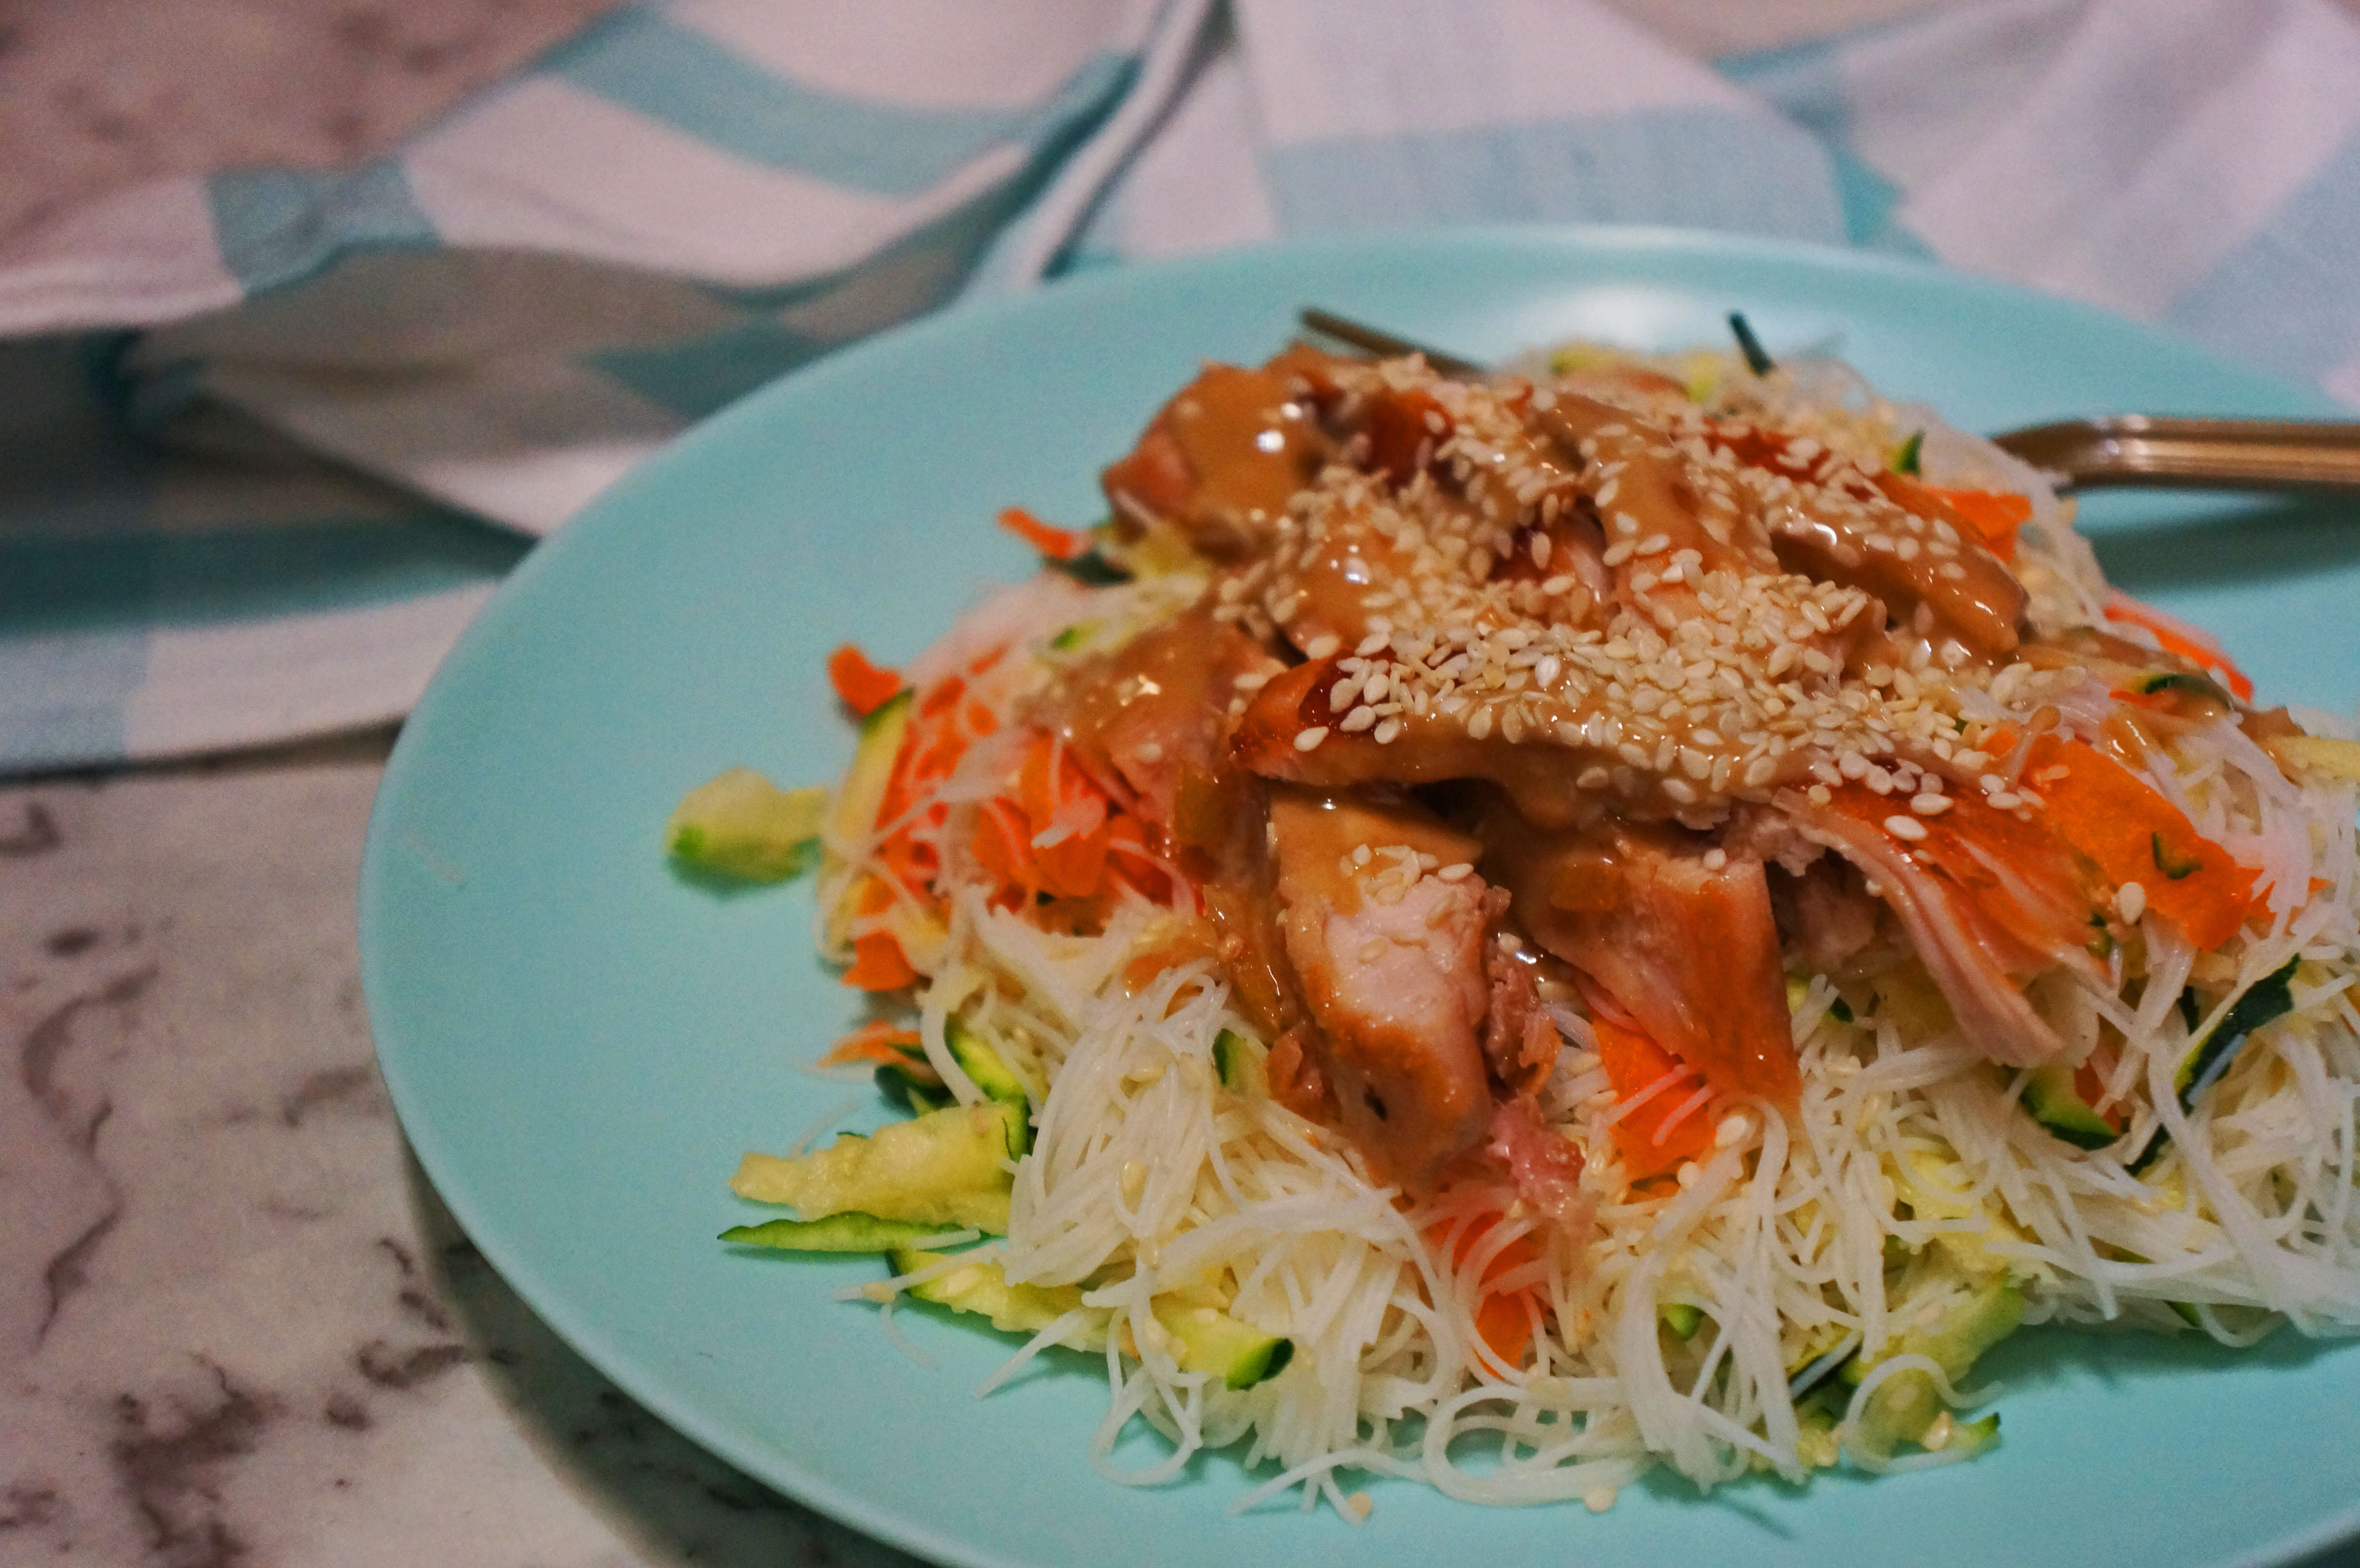 A tasty cold chicken noodle salad drizzled with sesame seeds and tahini